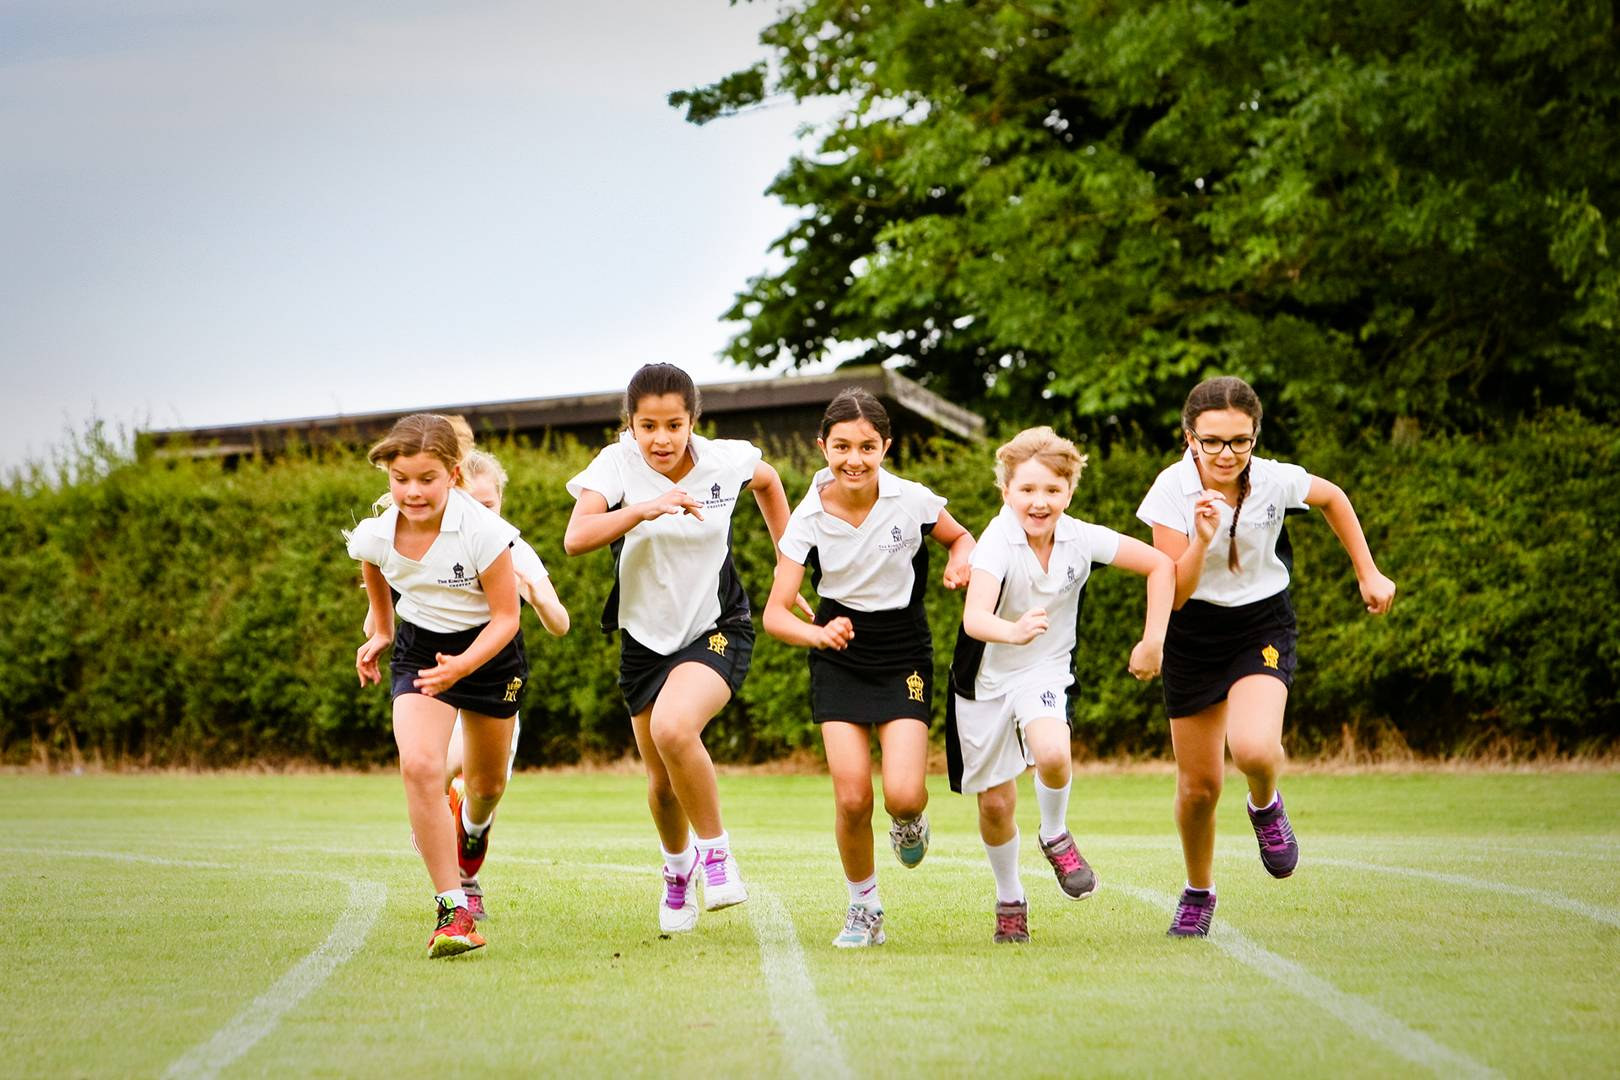 Tatler Schools Guide 2017: The best private prep and public